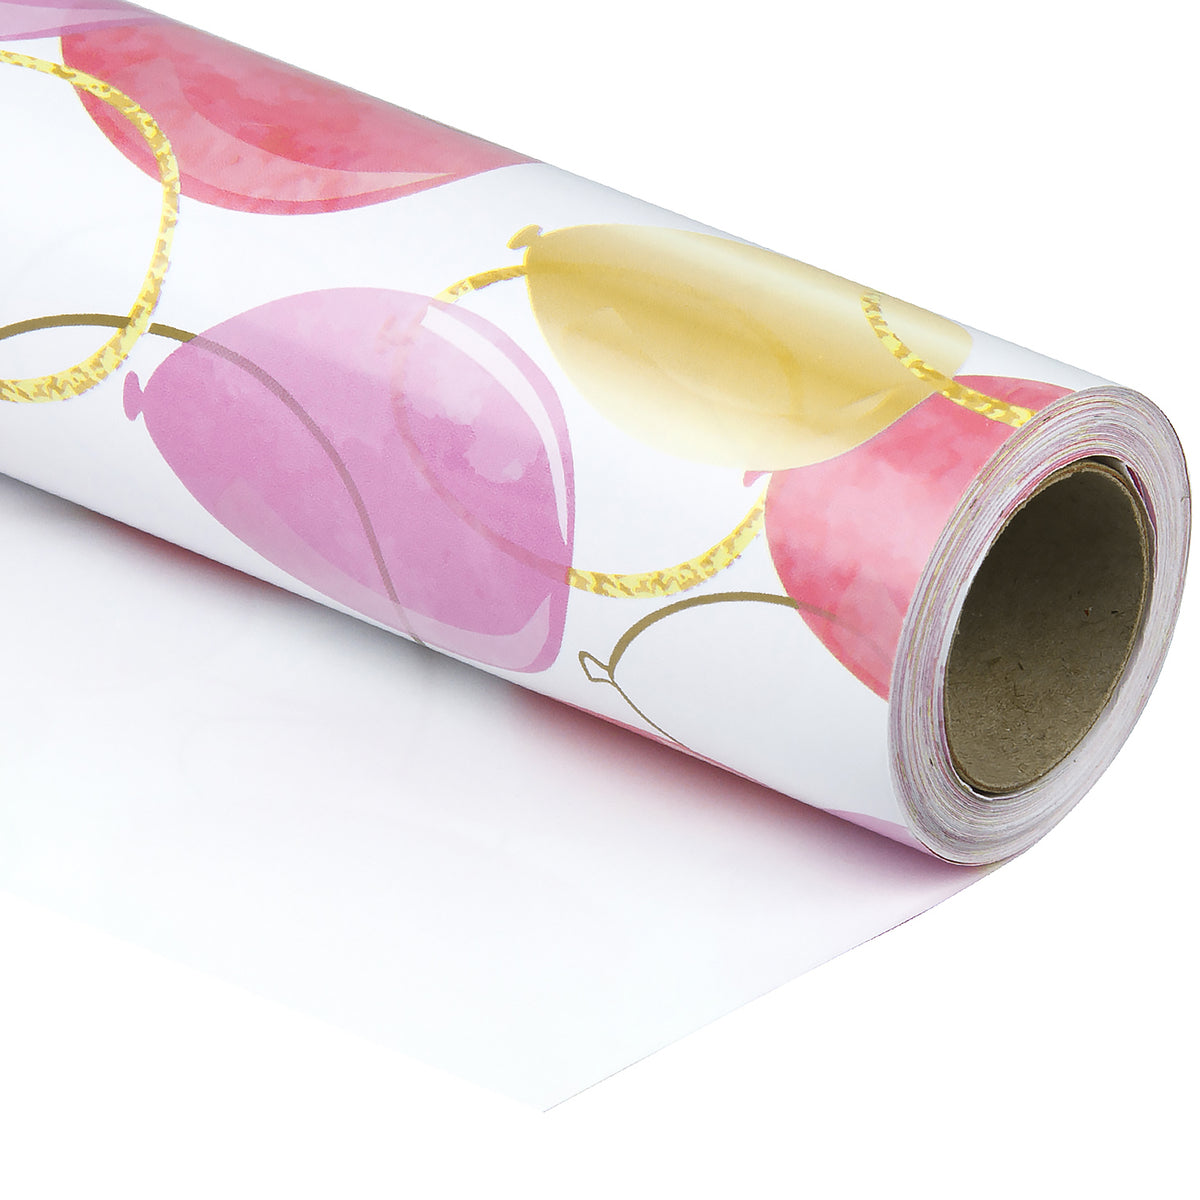 Wrapaholic-Pink-Purple-Gold-Print-Celebrating-Balloon-Design Gift-Wrapping-Paper-Roll-1